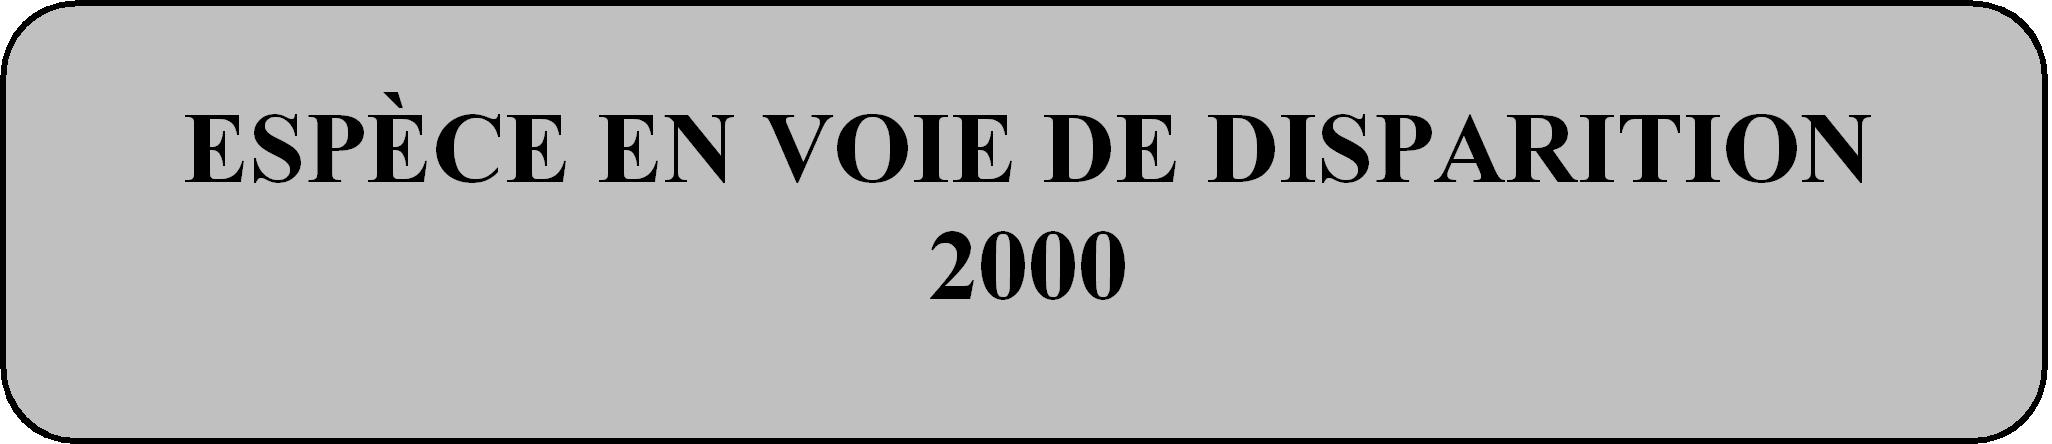 espece en voie de disparition 2000